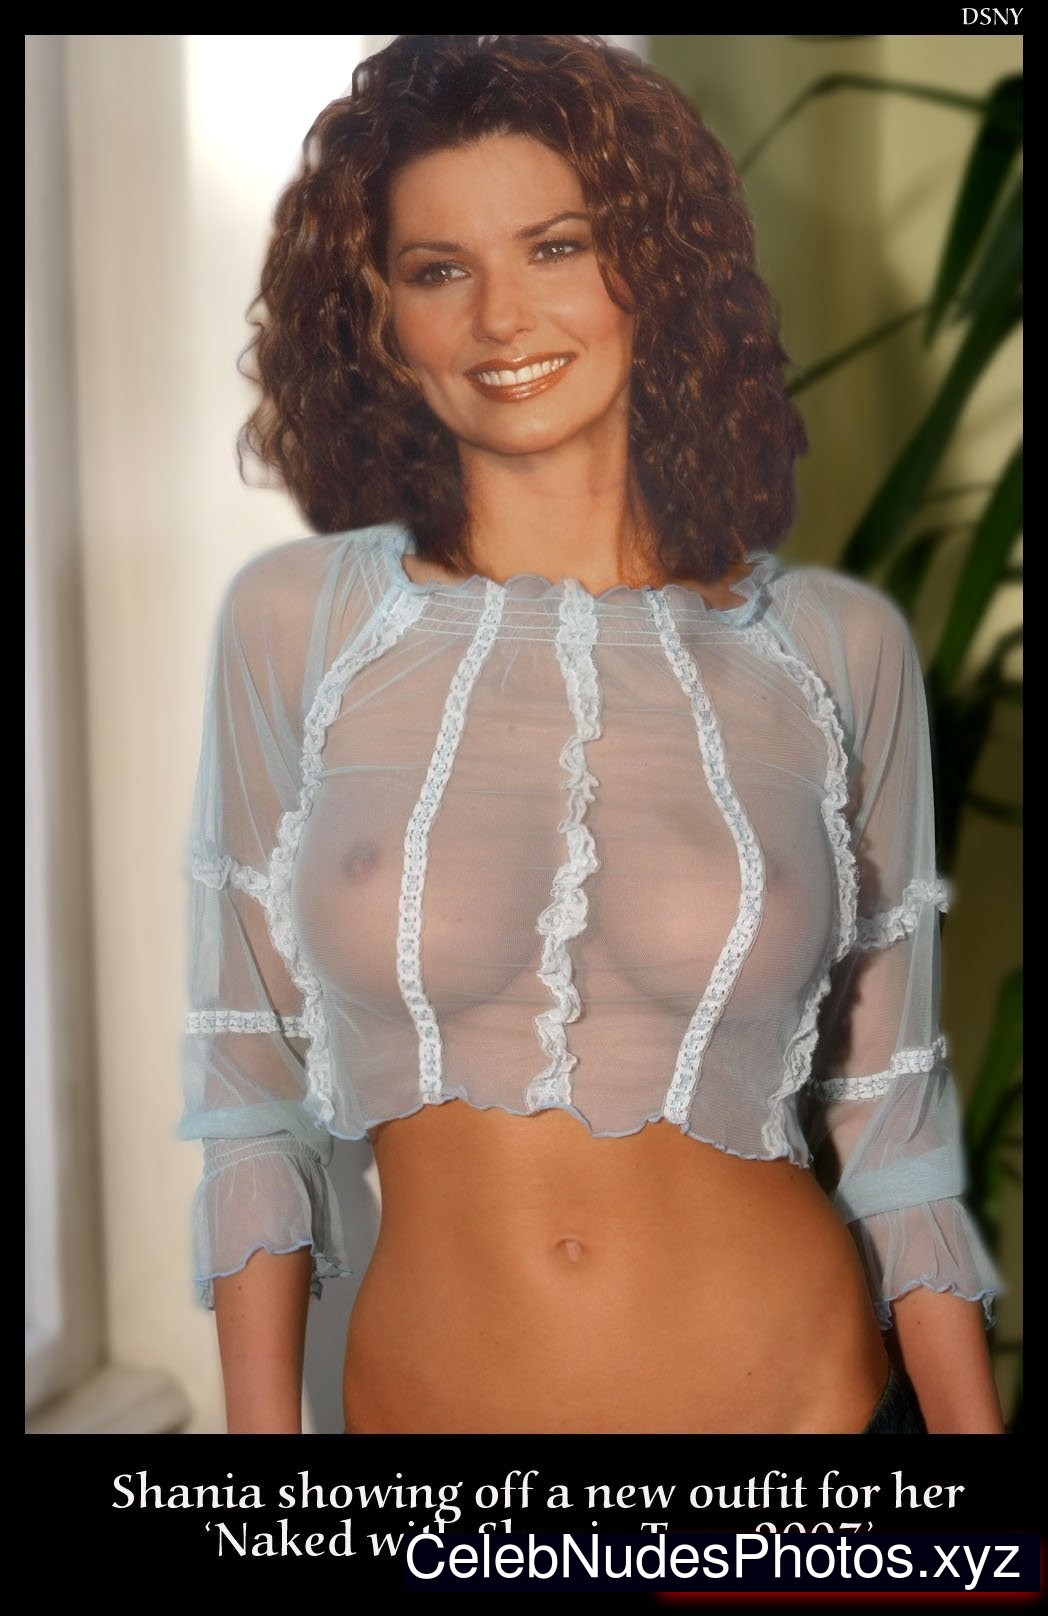 Naked shania twain fake nude pictures what words